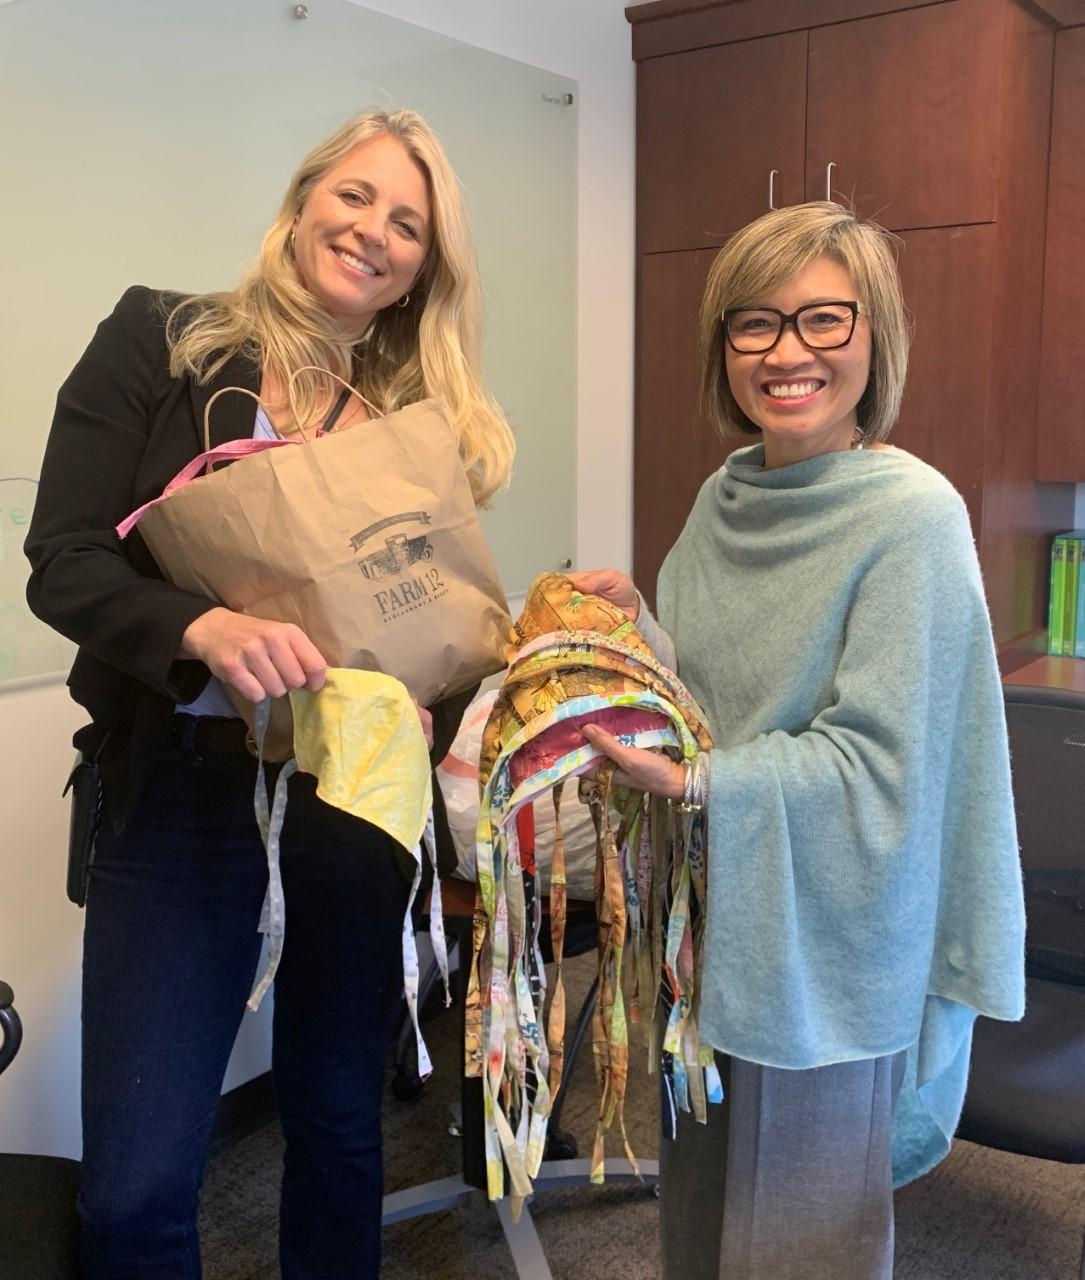 Krista Linden donates 100s of mask to Sound Family Medicine